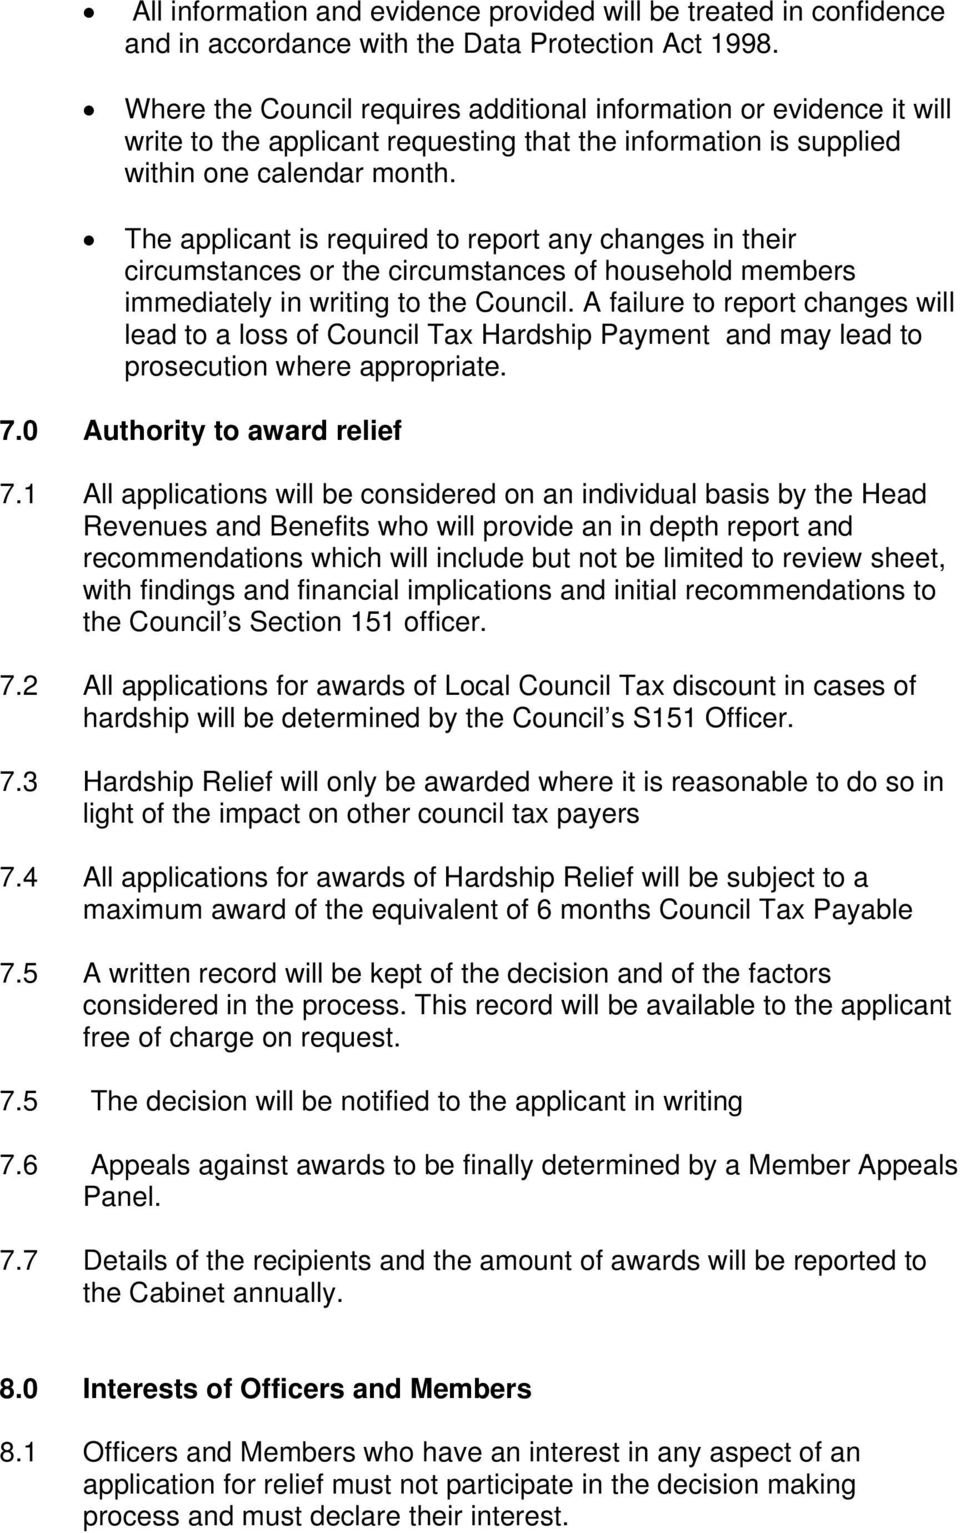 The applicant is required to report any changes in their circumstances or the circumstances of household members immediately in writing to the Council.